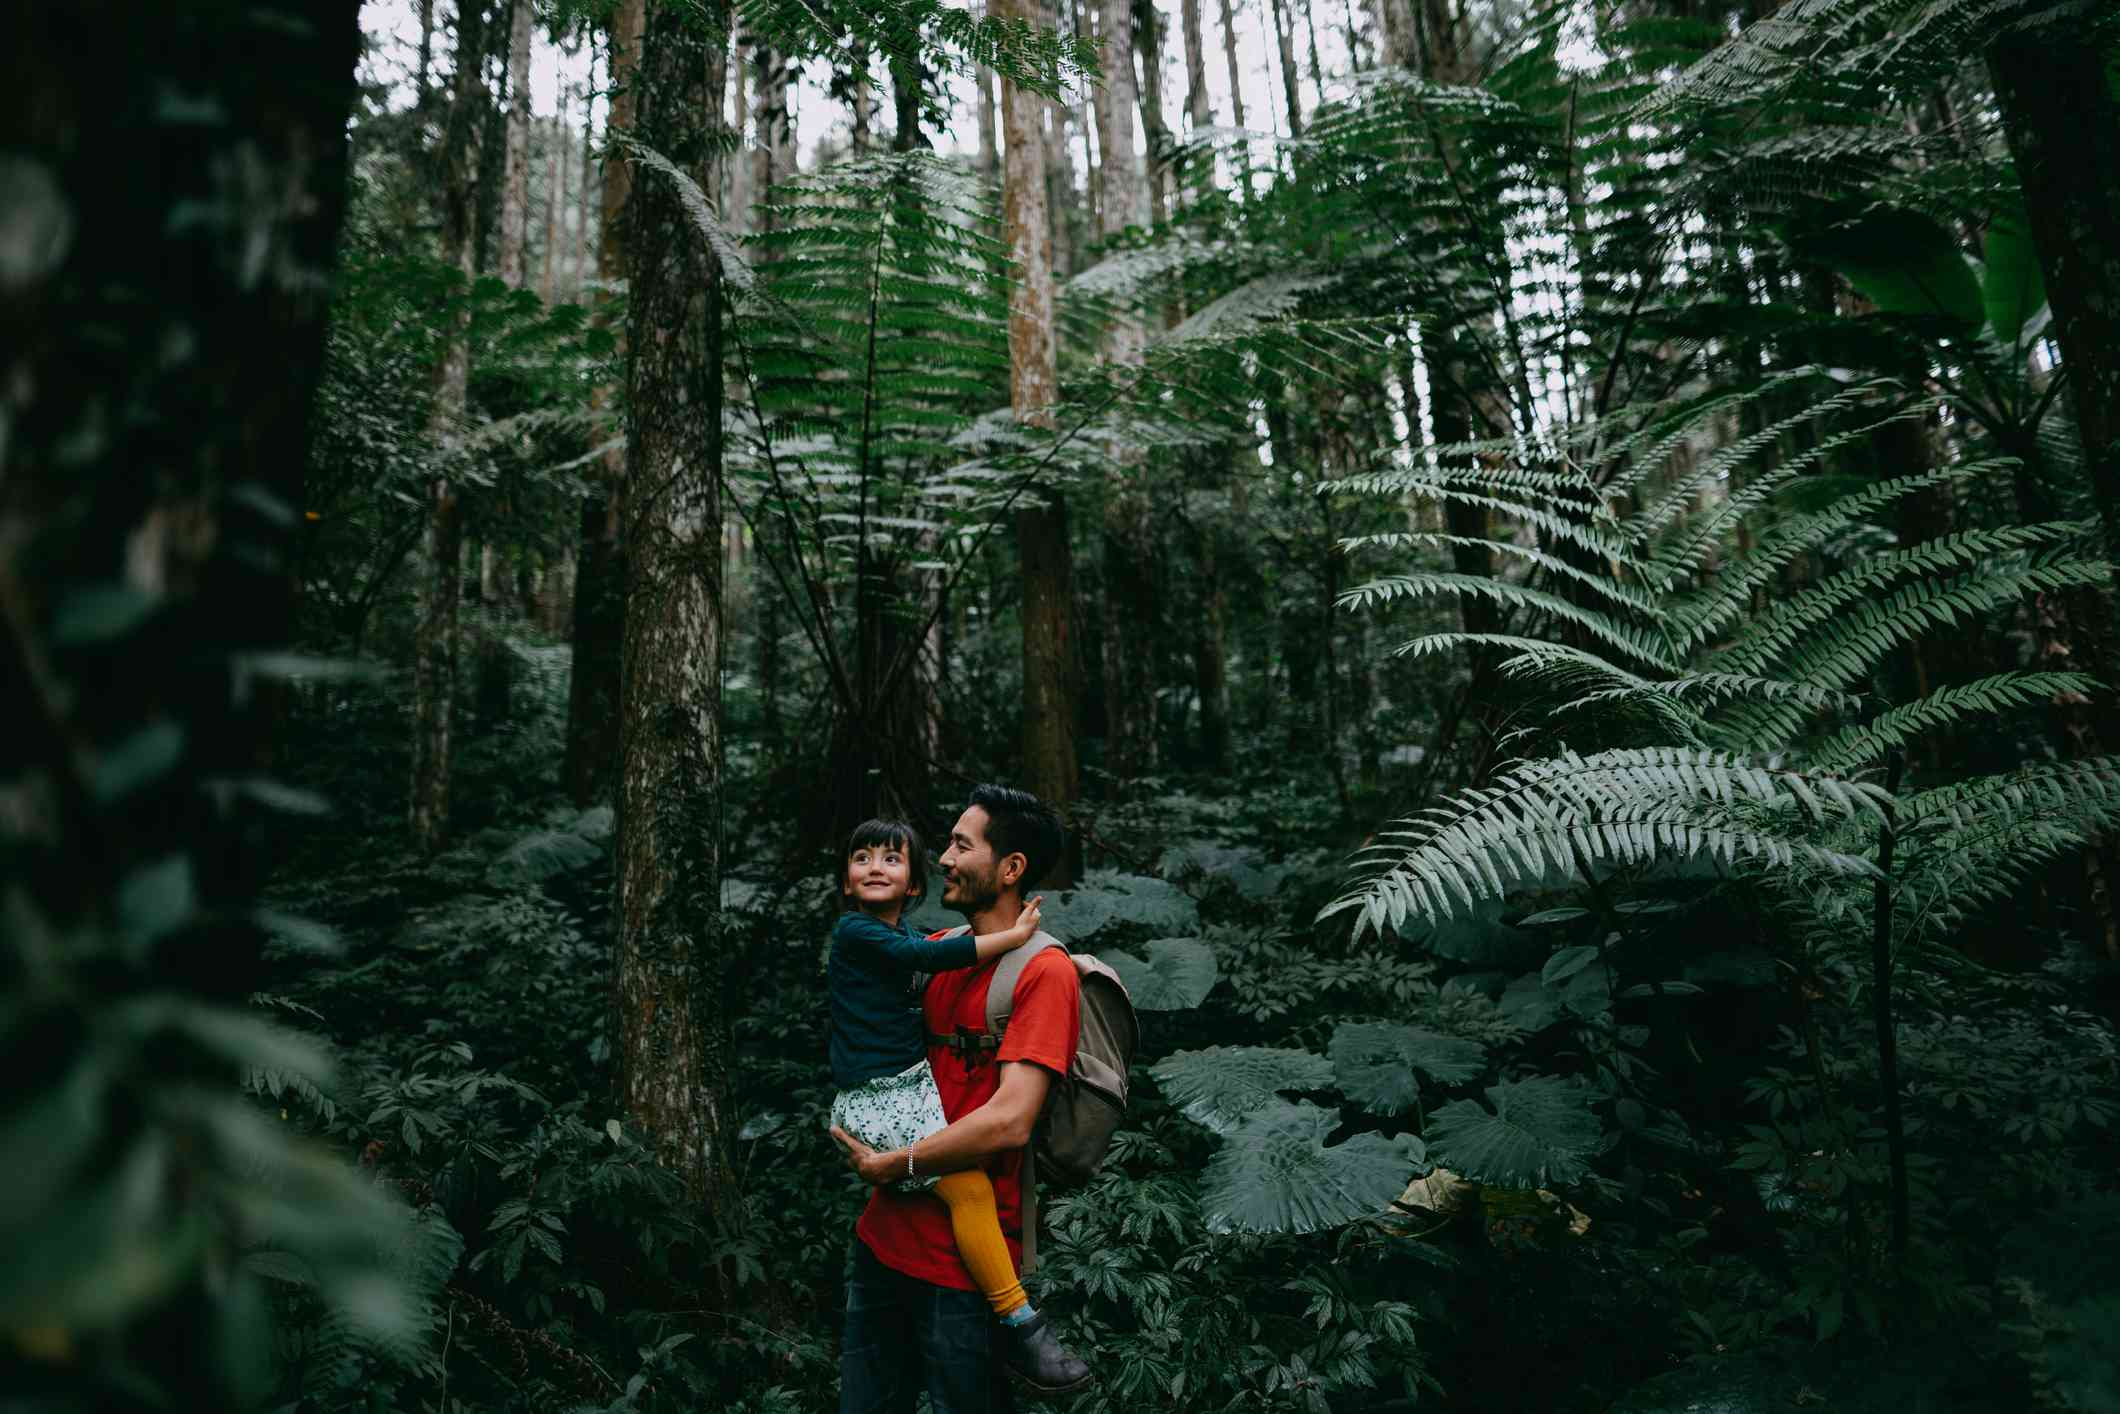 man wearing red t-shirt holding a child in a dense forest of ferns